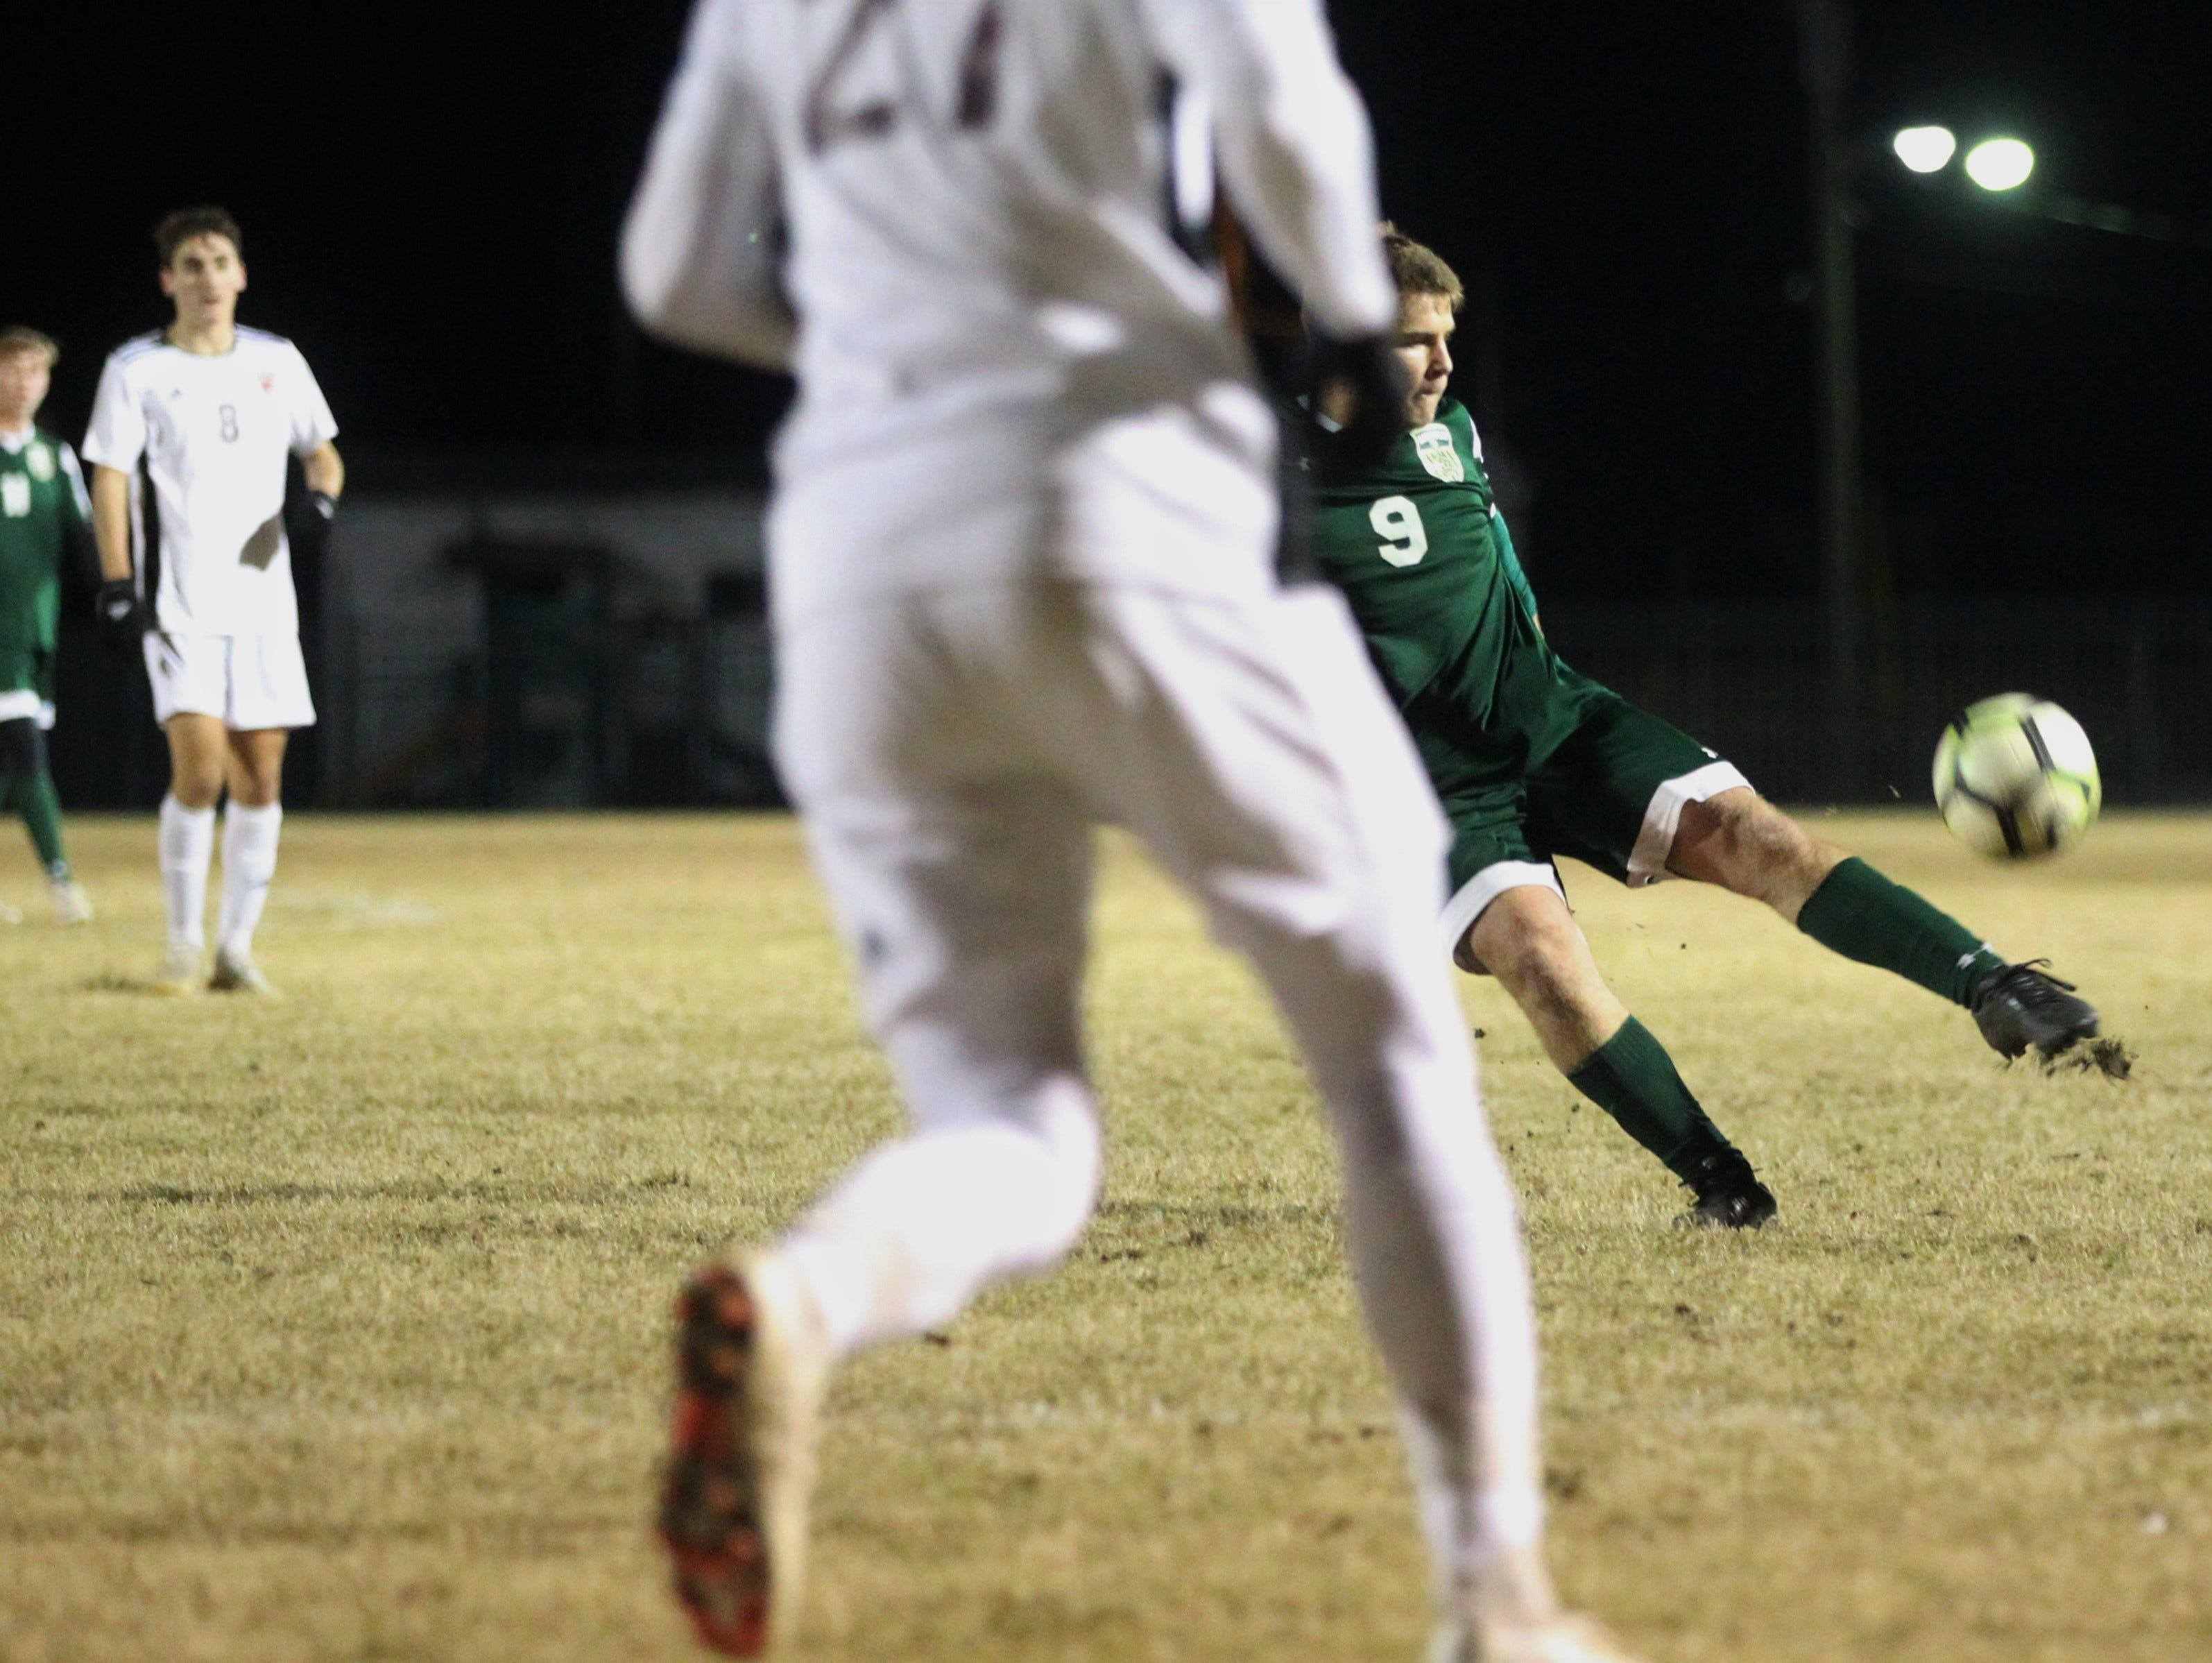 Lincoln's Sean Yearwood sends a shot back into the box as Chiles' boys soccer team beat Lincoln 1-0 in a District 2-4A semifinal on Jan. 30, 2019.